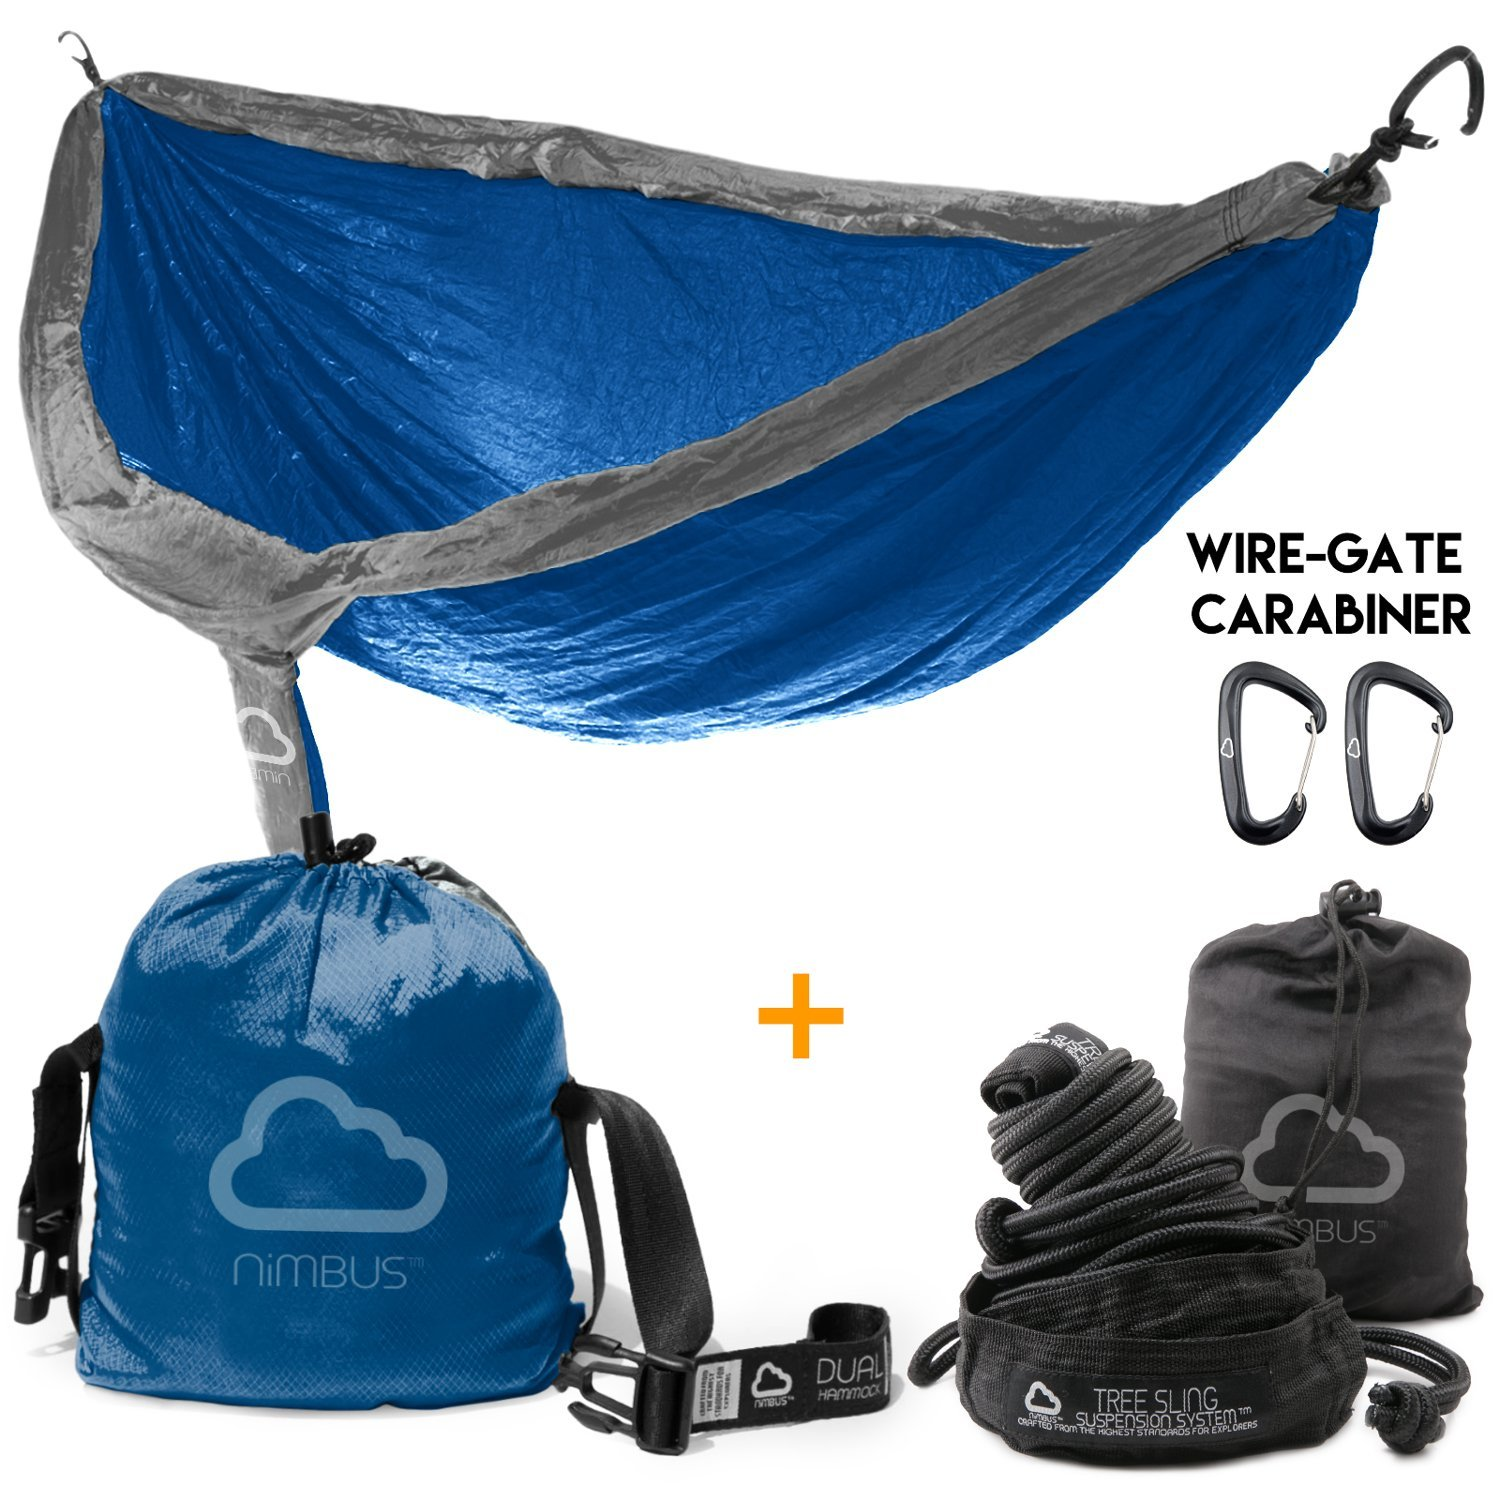 BUNDLE SET FLASH SALE! Double Outdoor Camping Nylon Hammock with Suspension Kit & Premium Carabiner [Complete Hammock Set] - Designed in USA | Top Rated | Built to Last | by Nimbus Hammock